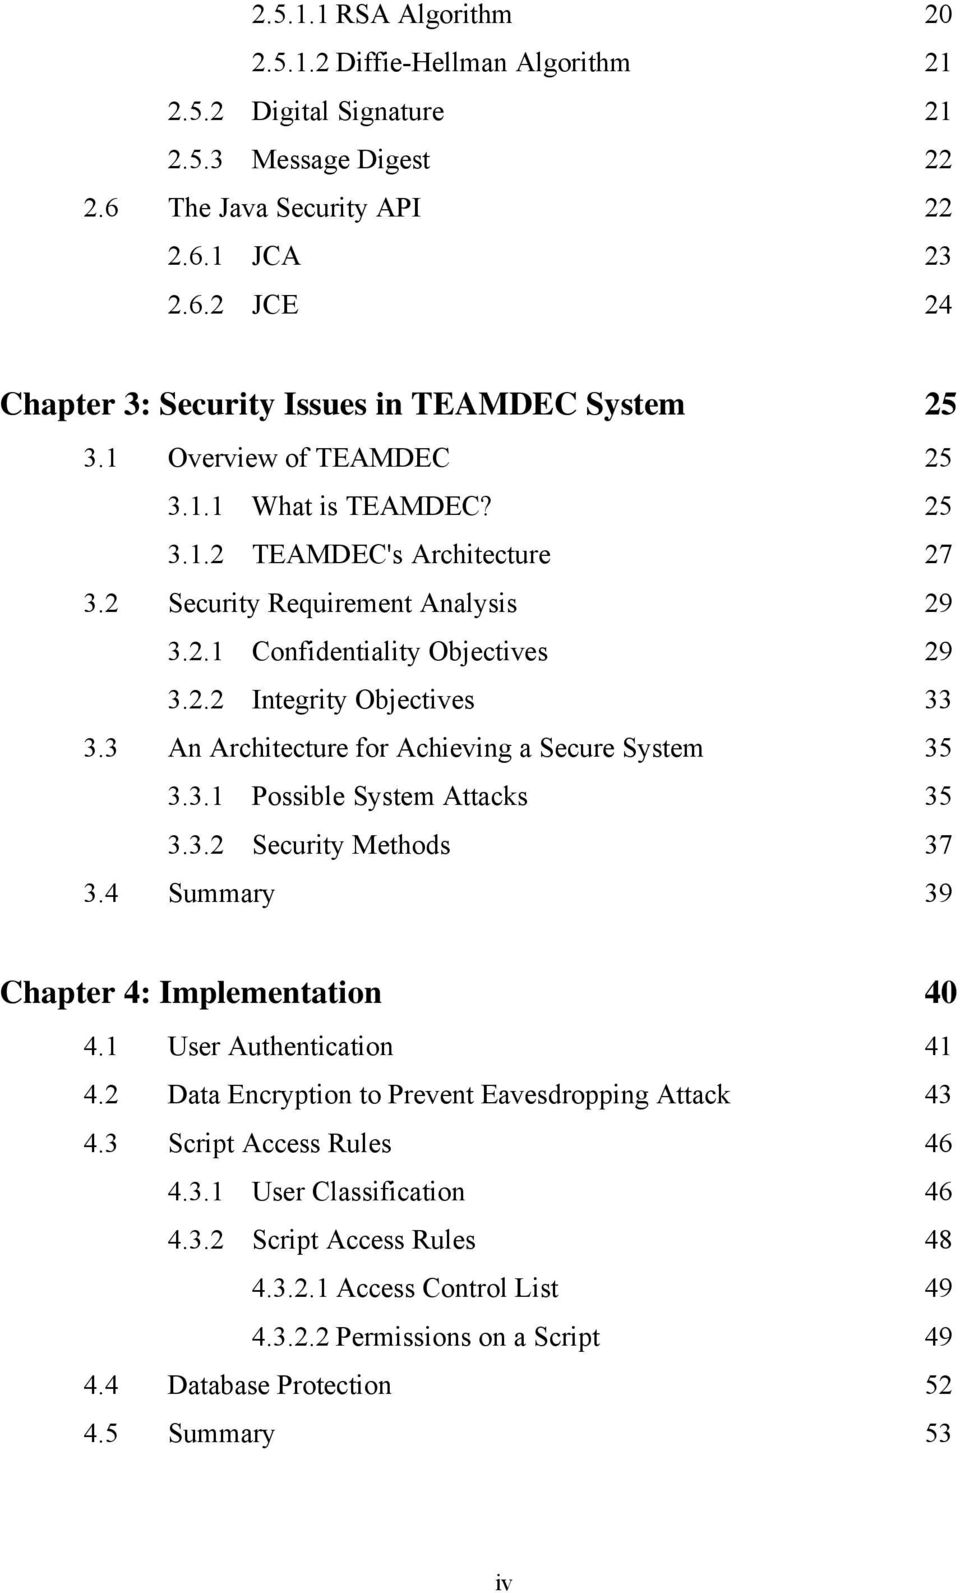 3 An Architecture for Achieving a Secure System 35 3.3.1 Possible System Attacks 35 3.3.2 Security Methods 37 3.4 Summary 39 Chapter 4: Implementation 40 4.1 User Authentication 41 4.